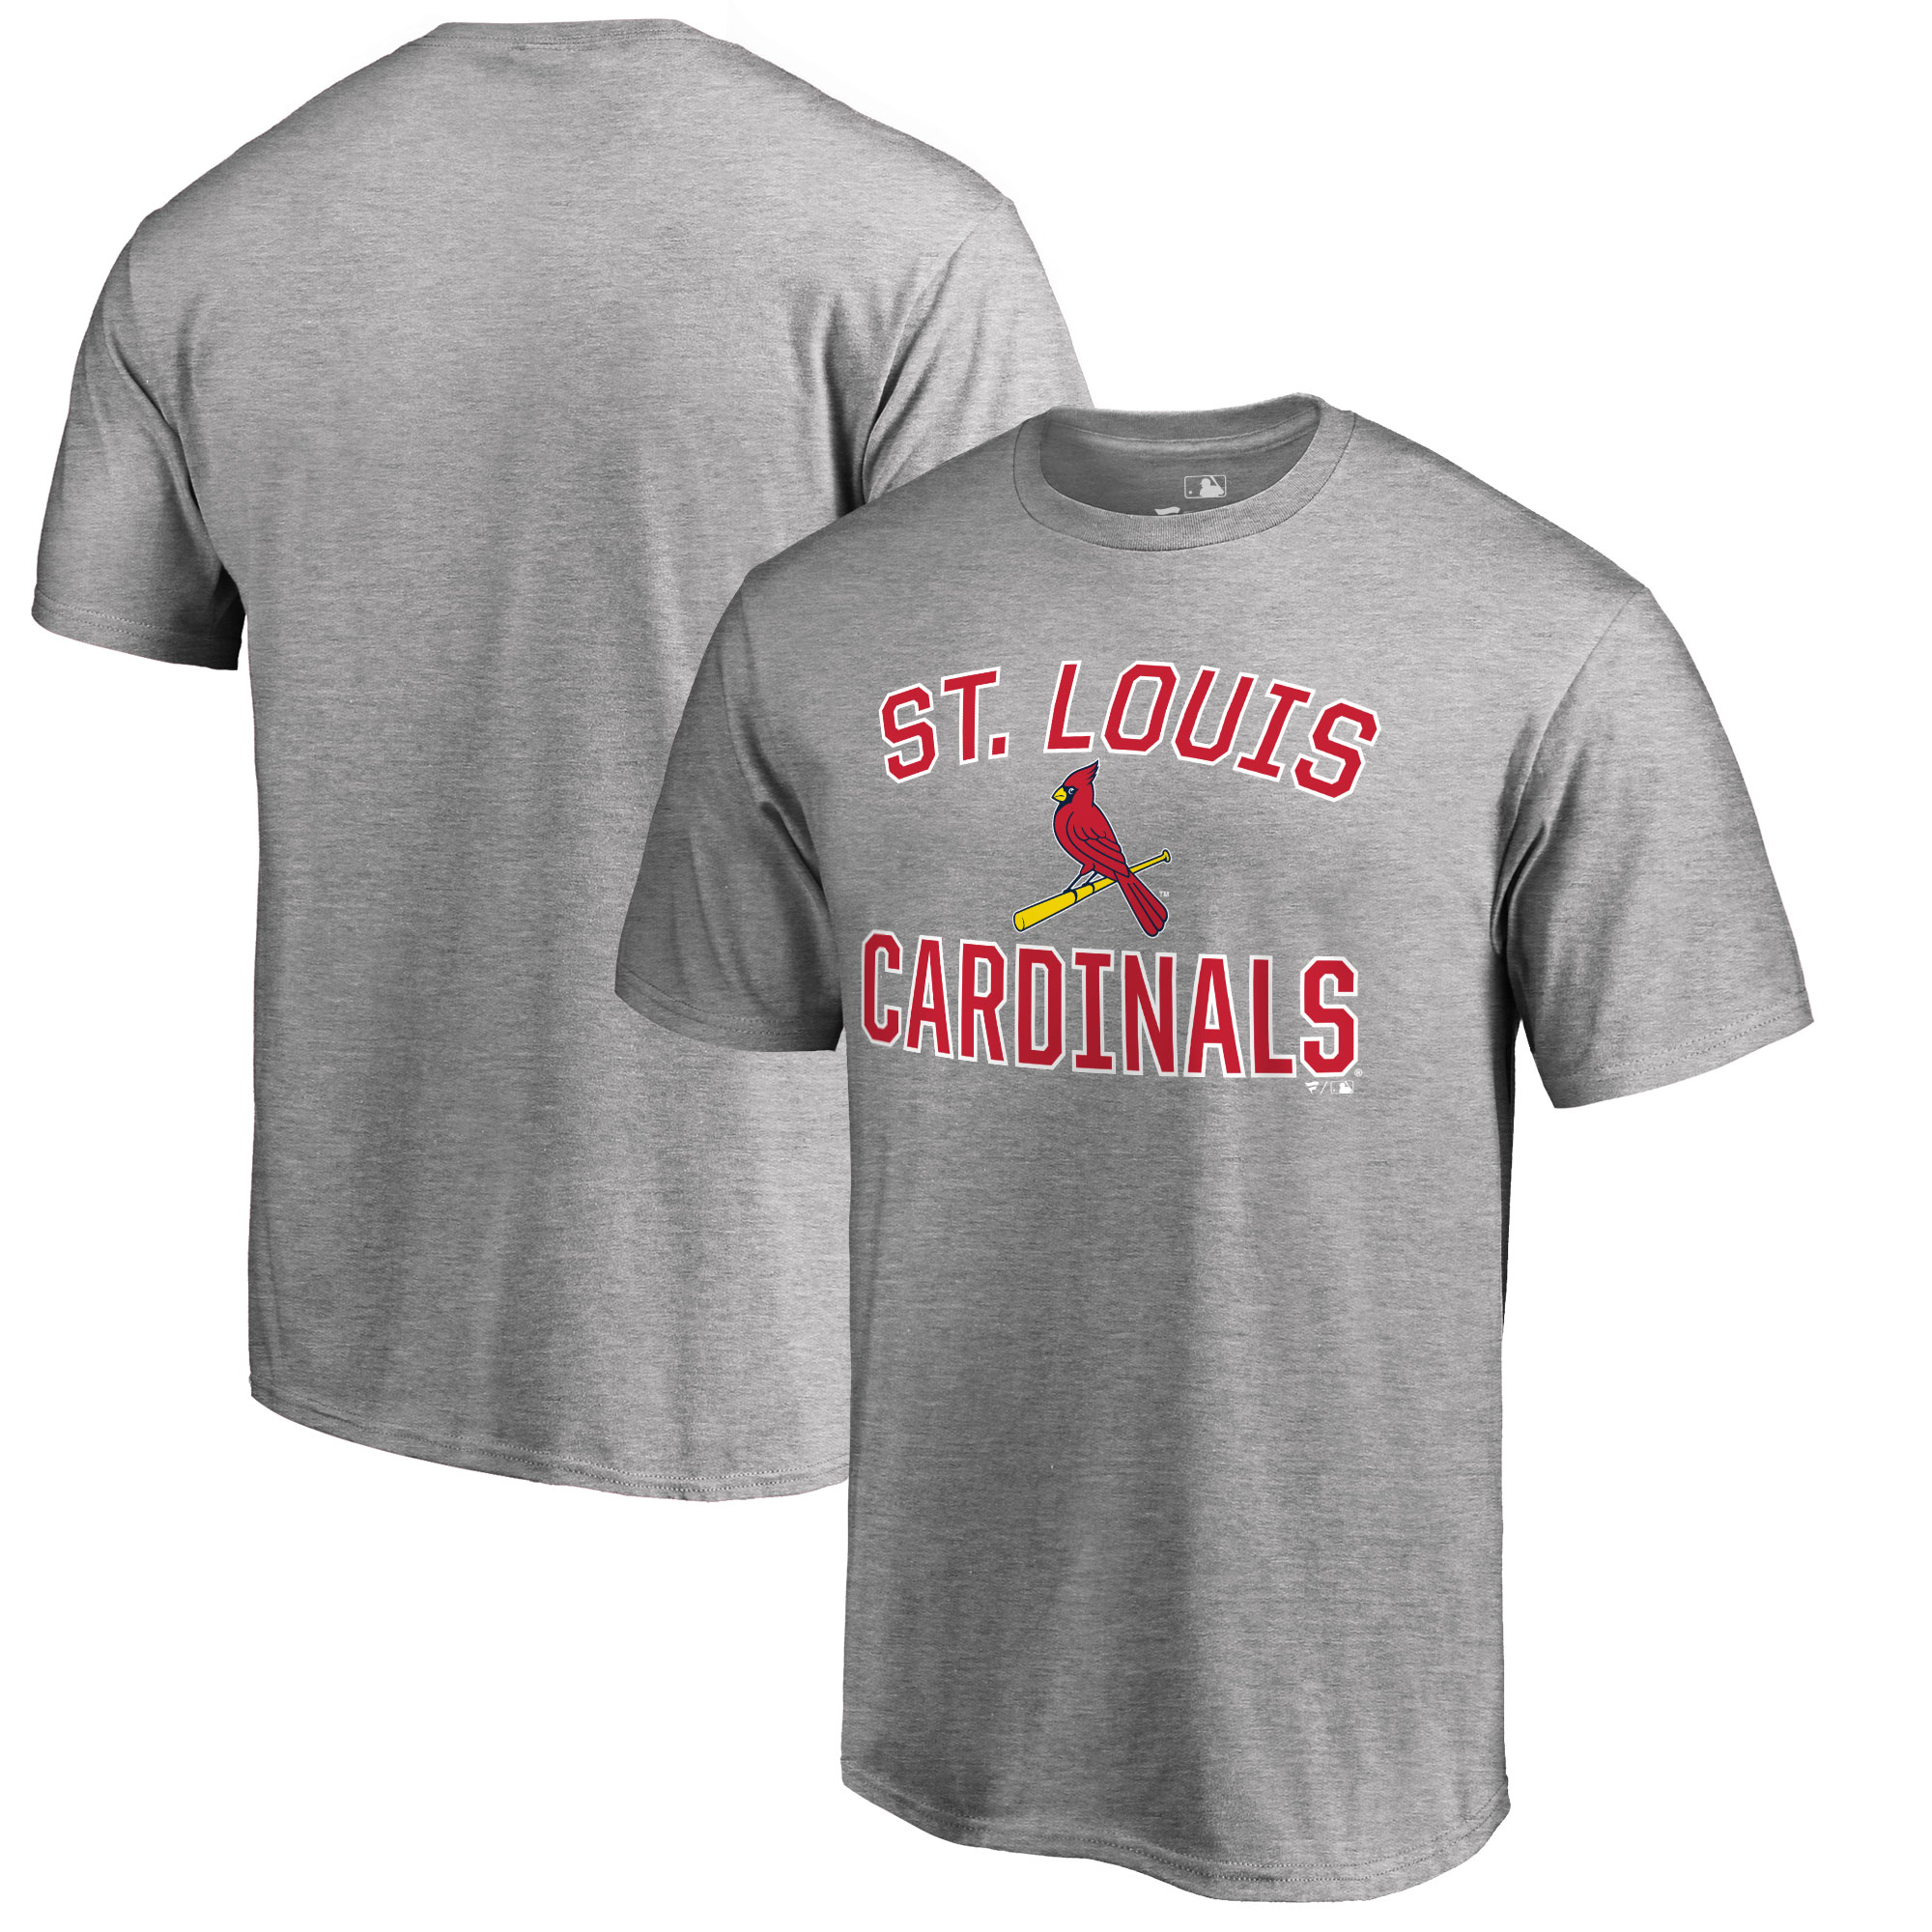 St. Louis Cardinals Big & Tall Victory Arch T-Shirt - Ash